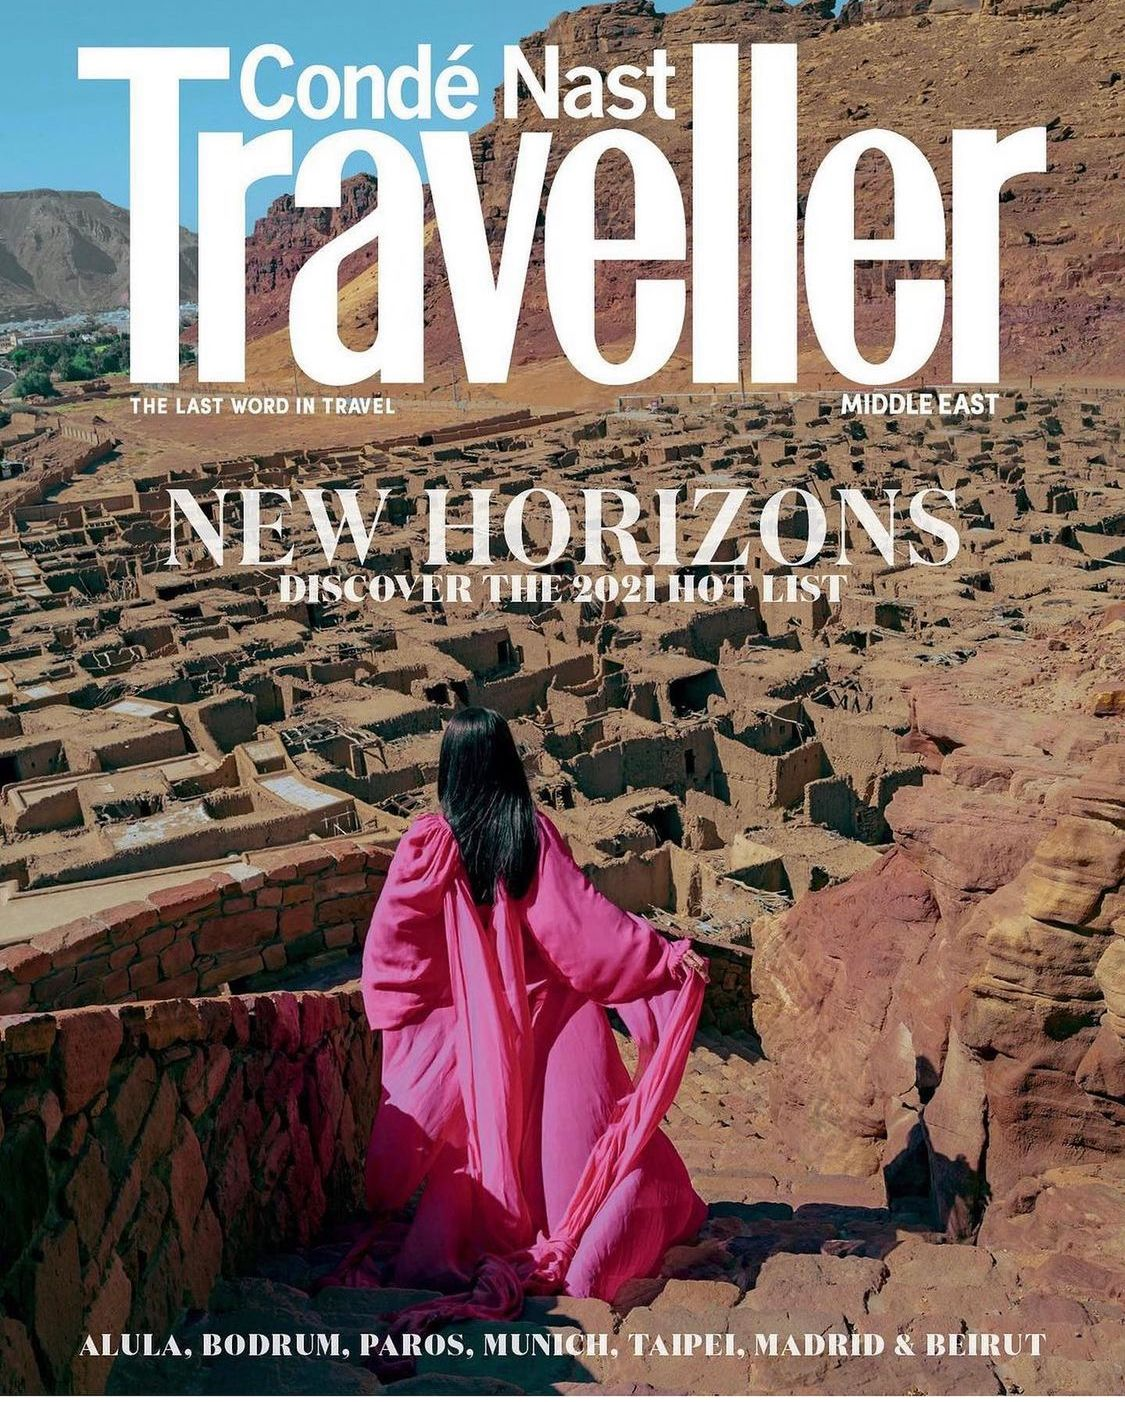 """ANOTHER AUTHENTIC SIDE OF ALULA """"Proud of our 4th cover"""